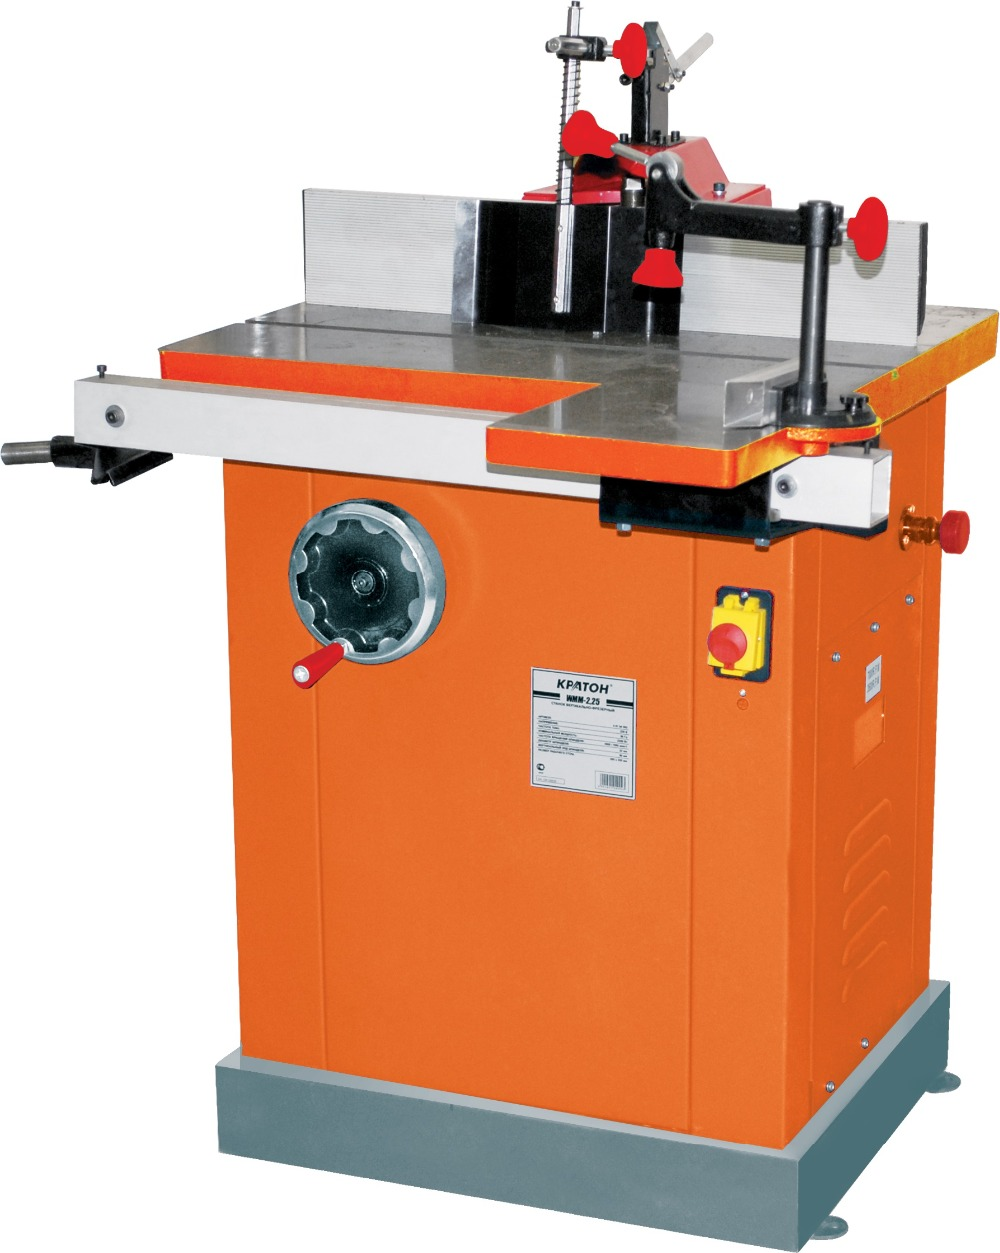 Vertical milling machine Kraton WMM-2,25 pcb milling machine cnc 2020b diy cnc wood carving machine mini engraving machine